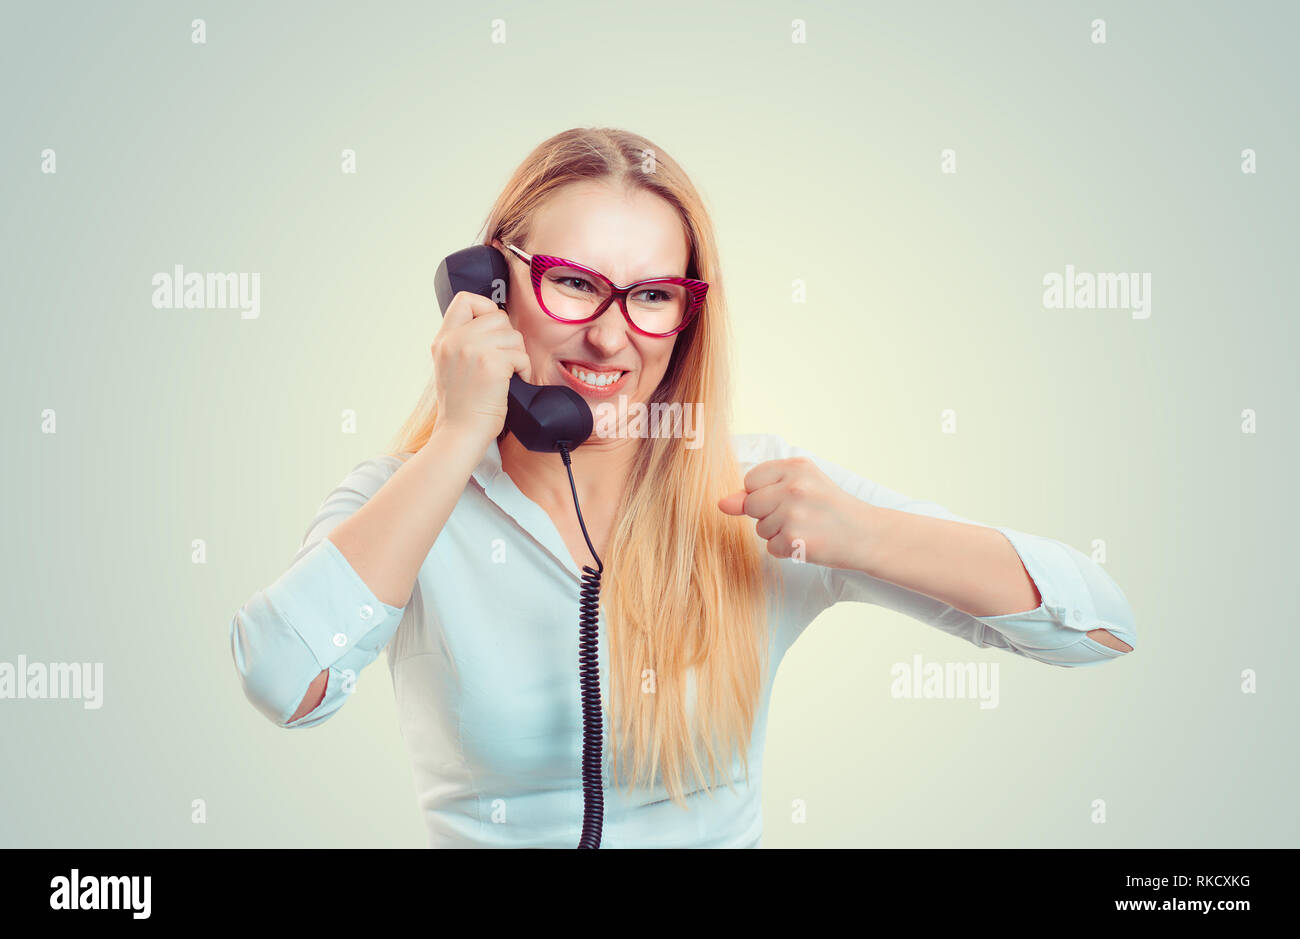 Furious woman speaking on phone - Stock Image